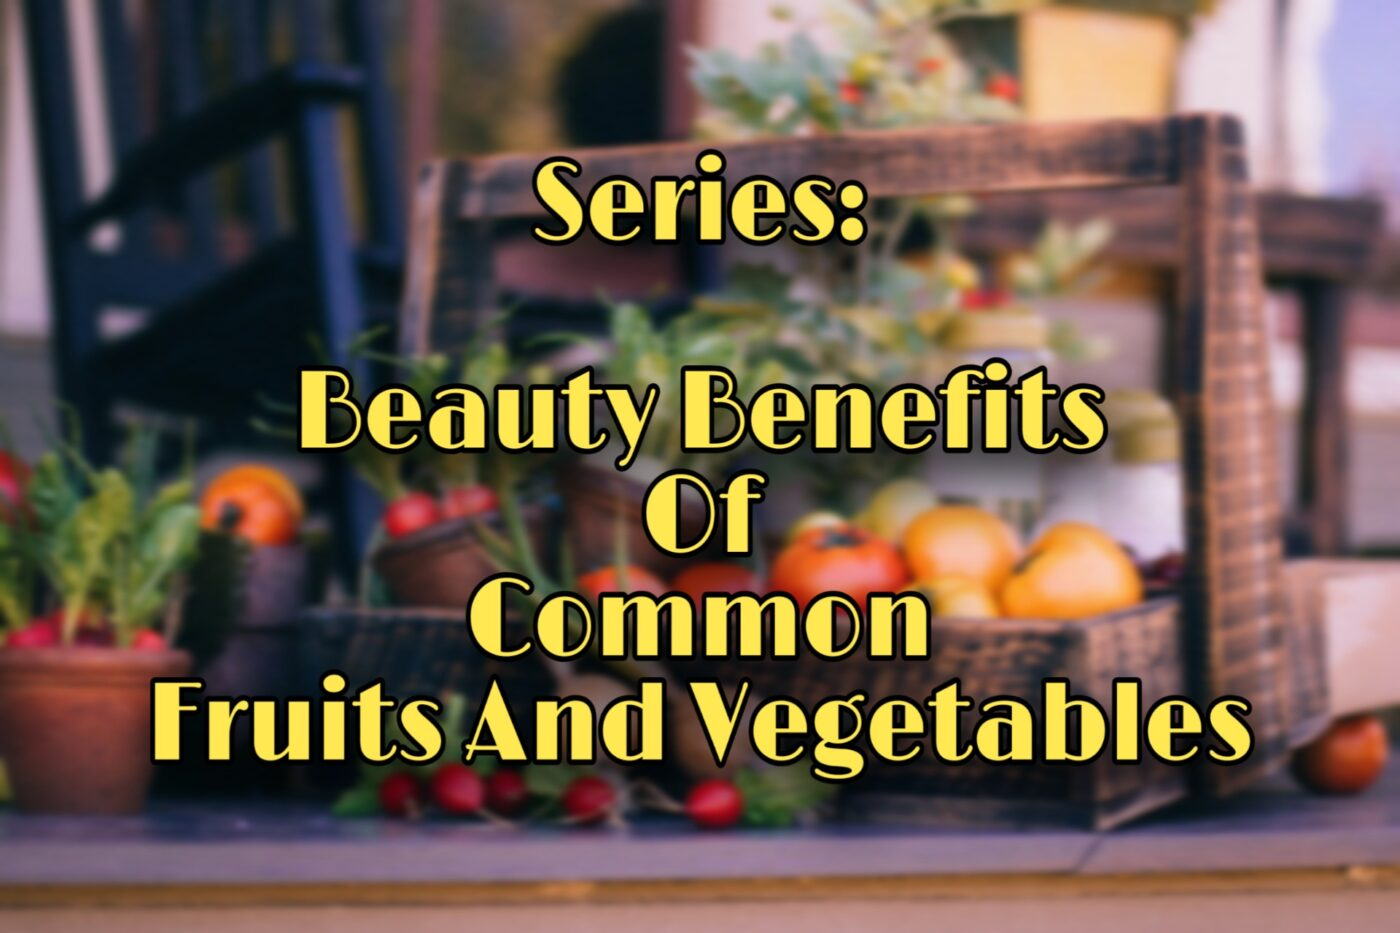 Beauty Benefits of Common Fruits and Vegetables